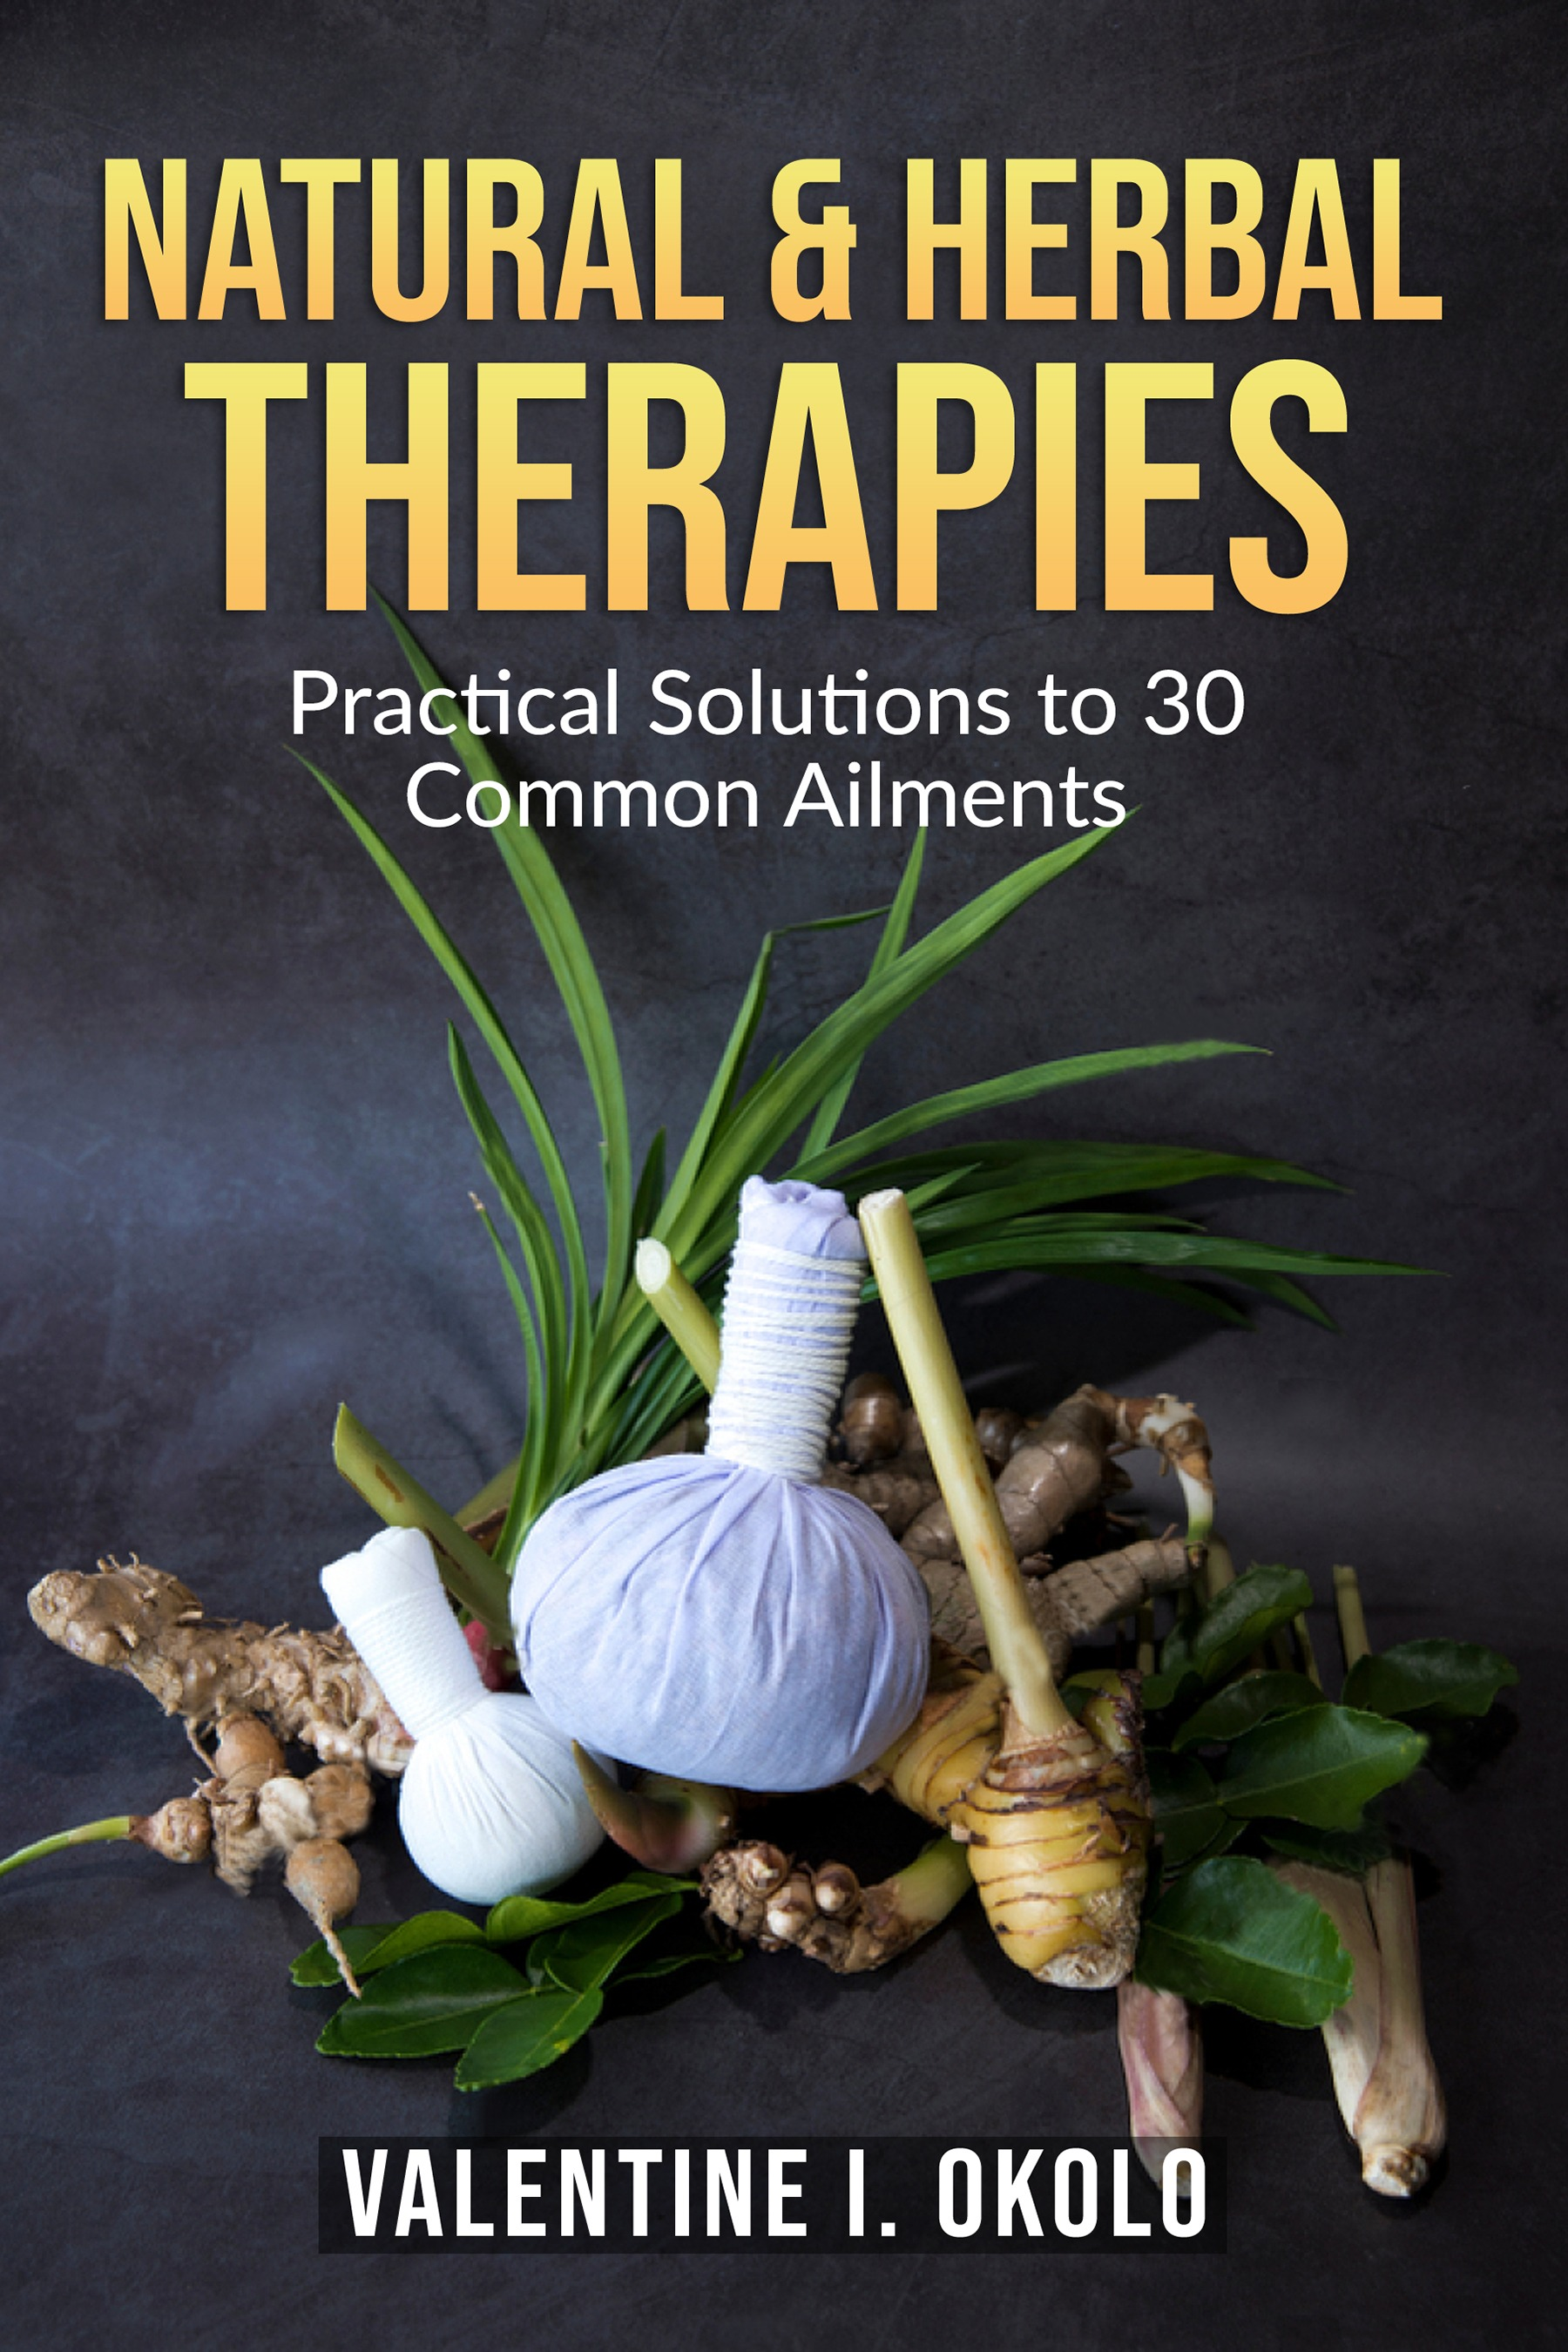 Natural and Herbal Therapies